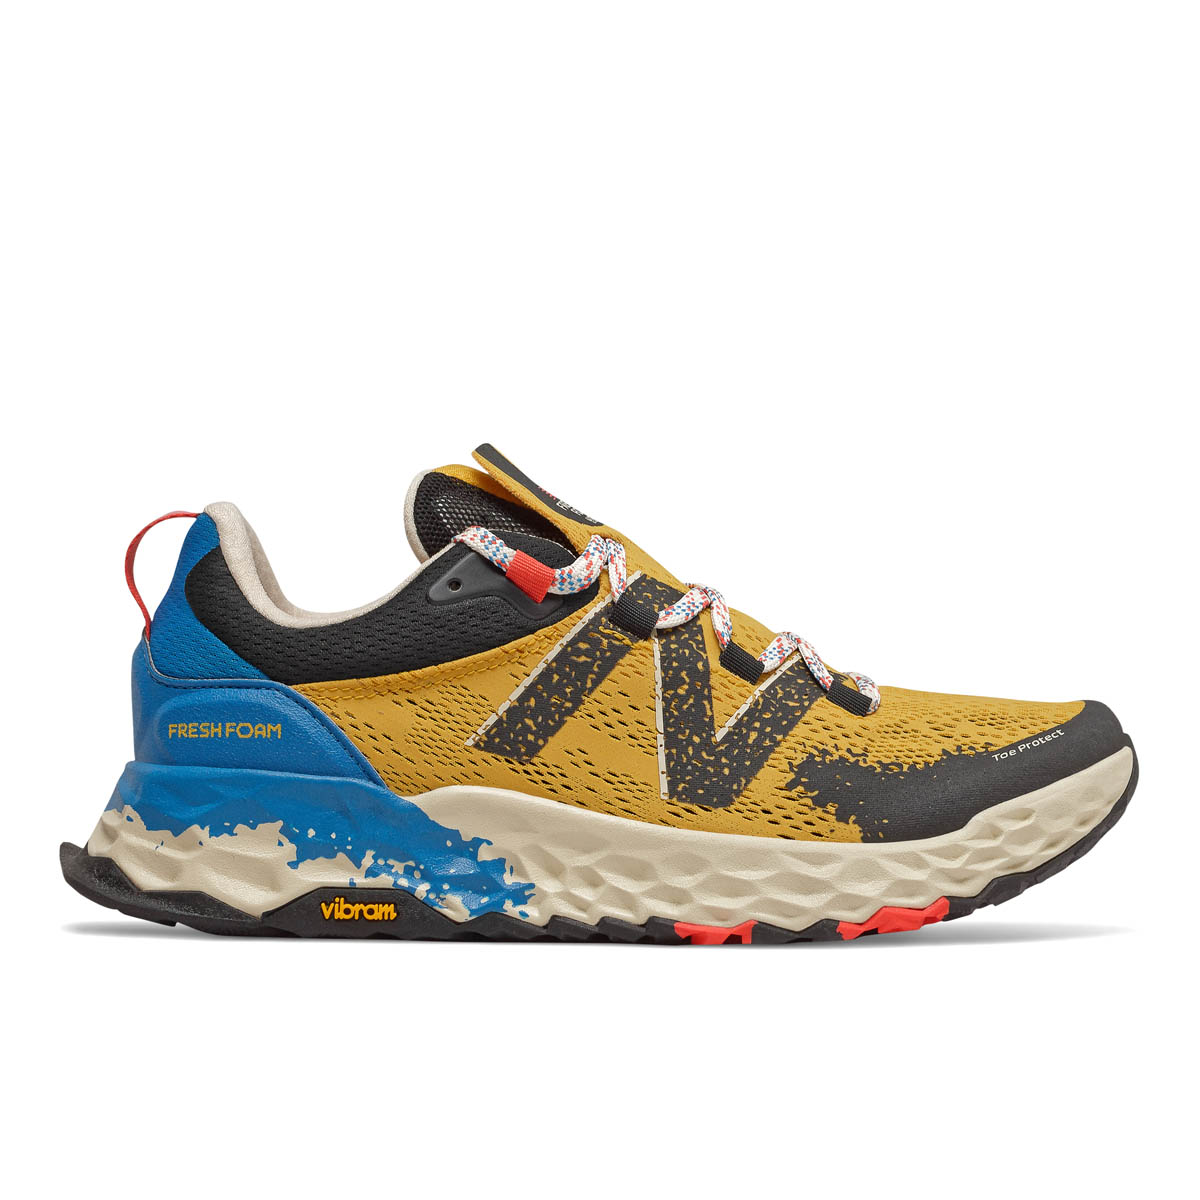 Spectaculaire New Balance Hierro v5 !